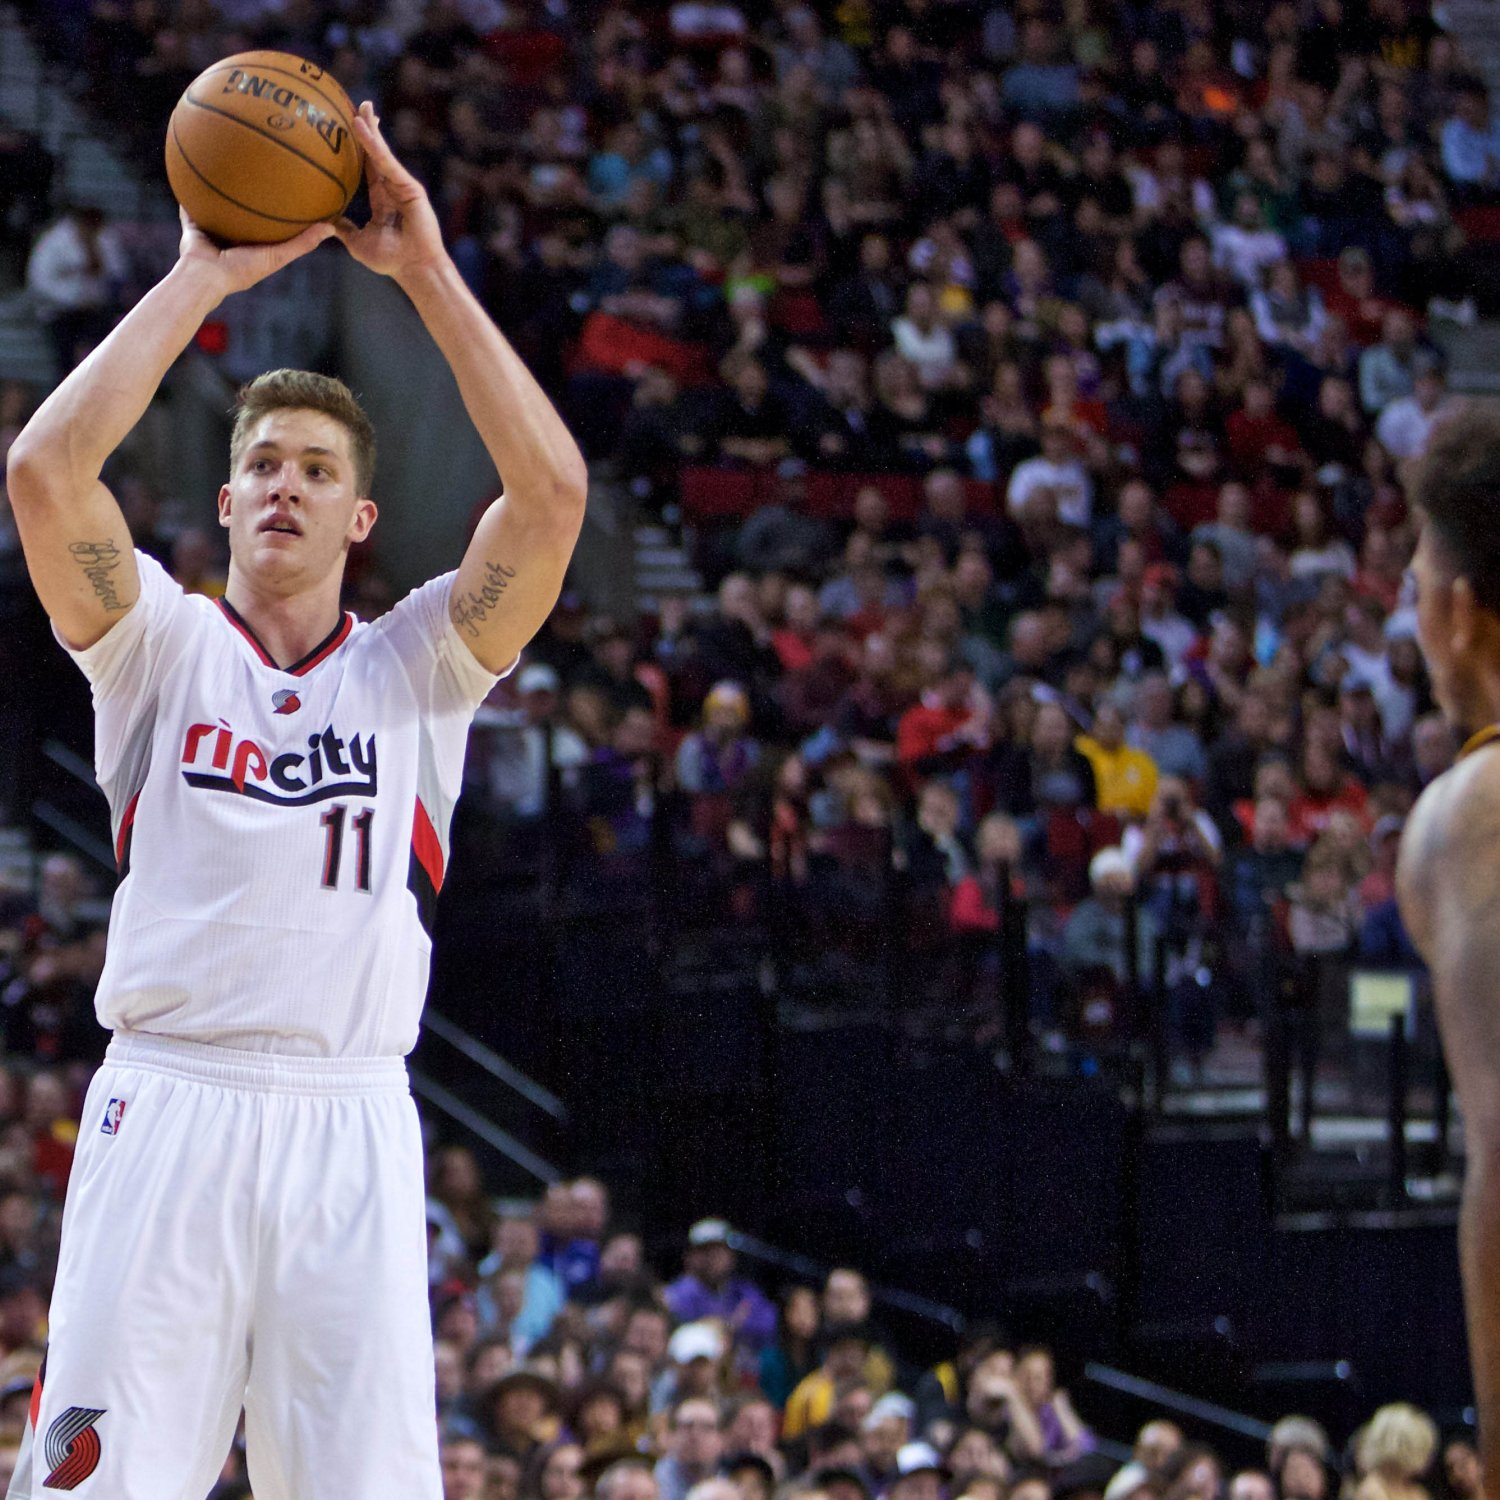 Blazers Vs Lakers: Lakers Vs. Trail Blazers: Score, Video Highlights And